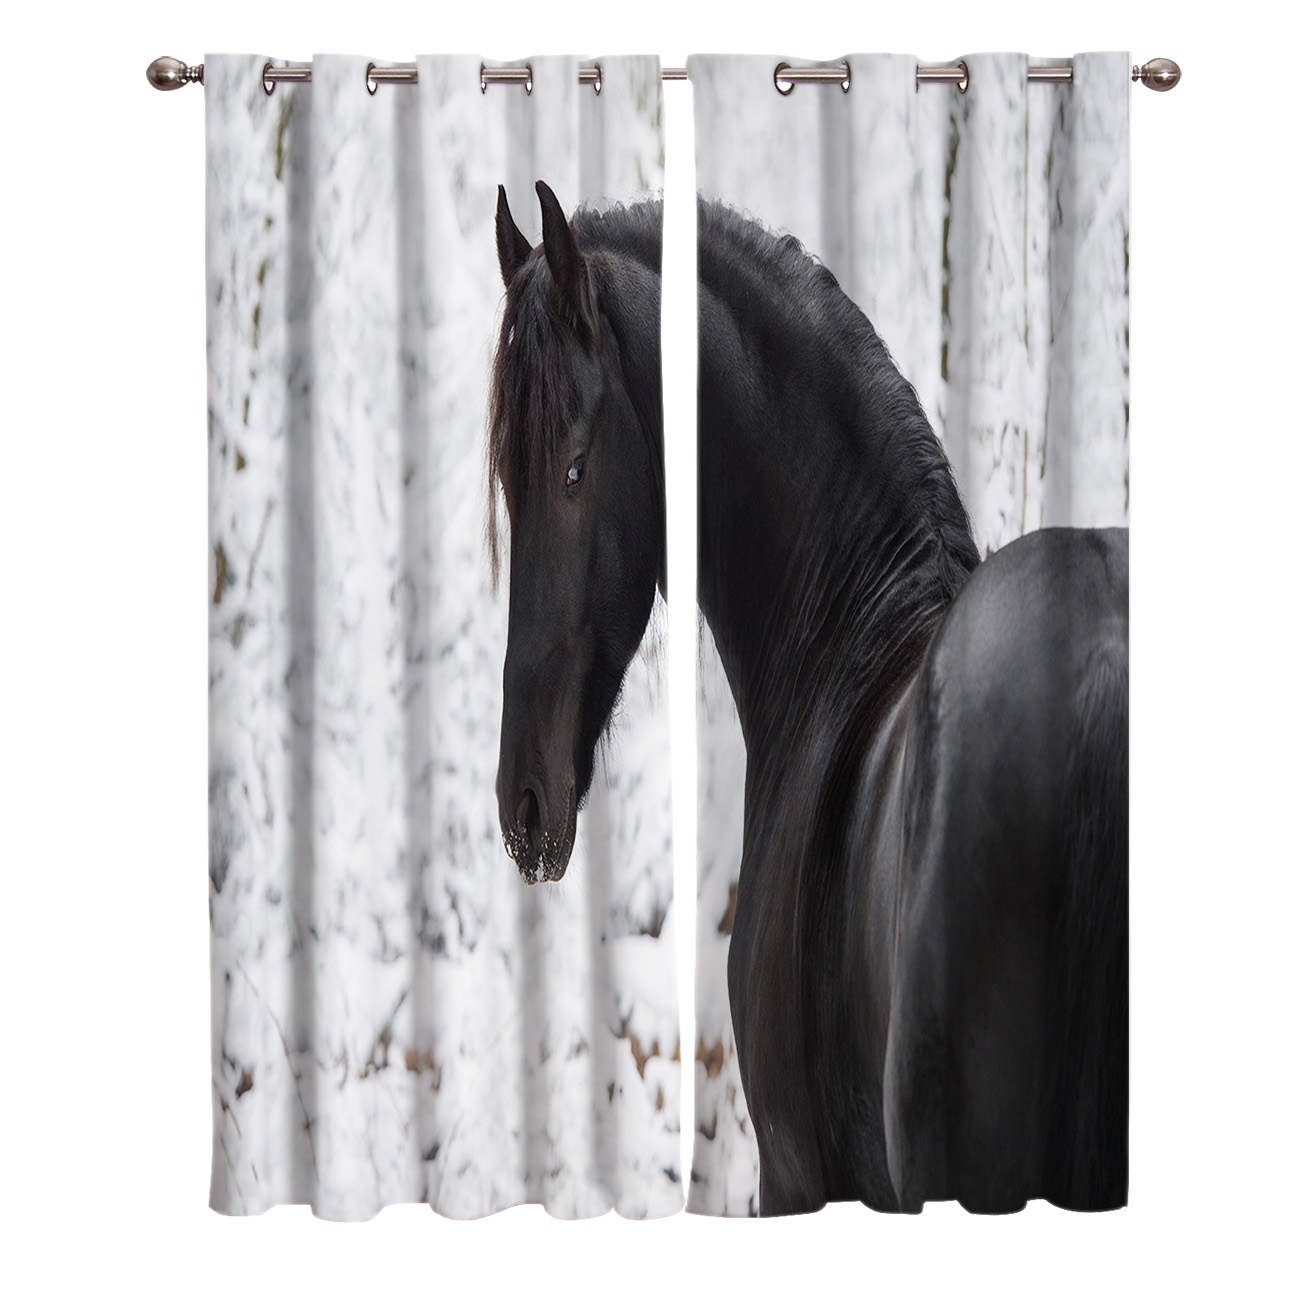 Animal Snow Black Horse Winter Window Curtains Curtains For Living Room Decorative Items Living Room Curtains Aliexpress